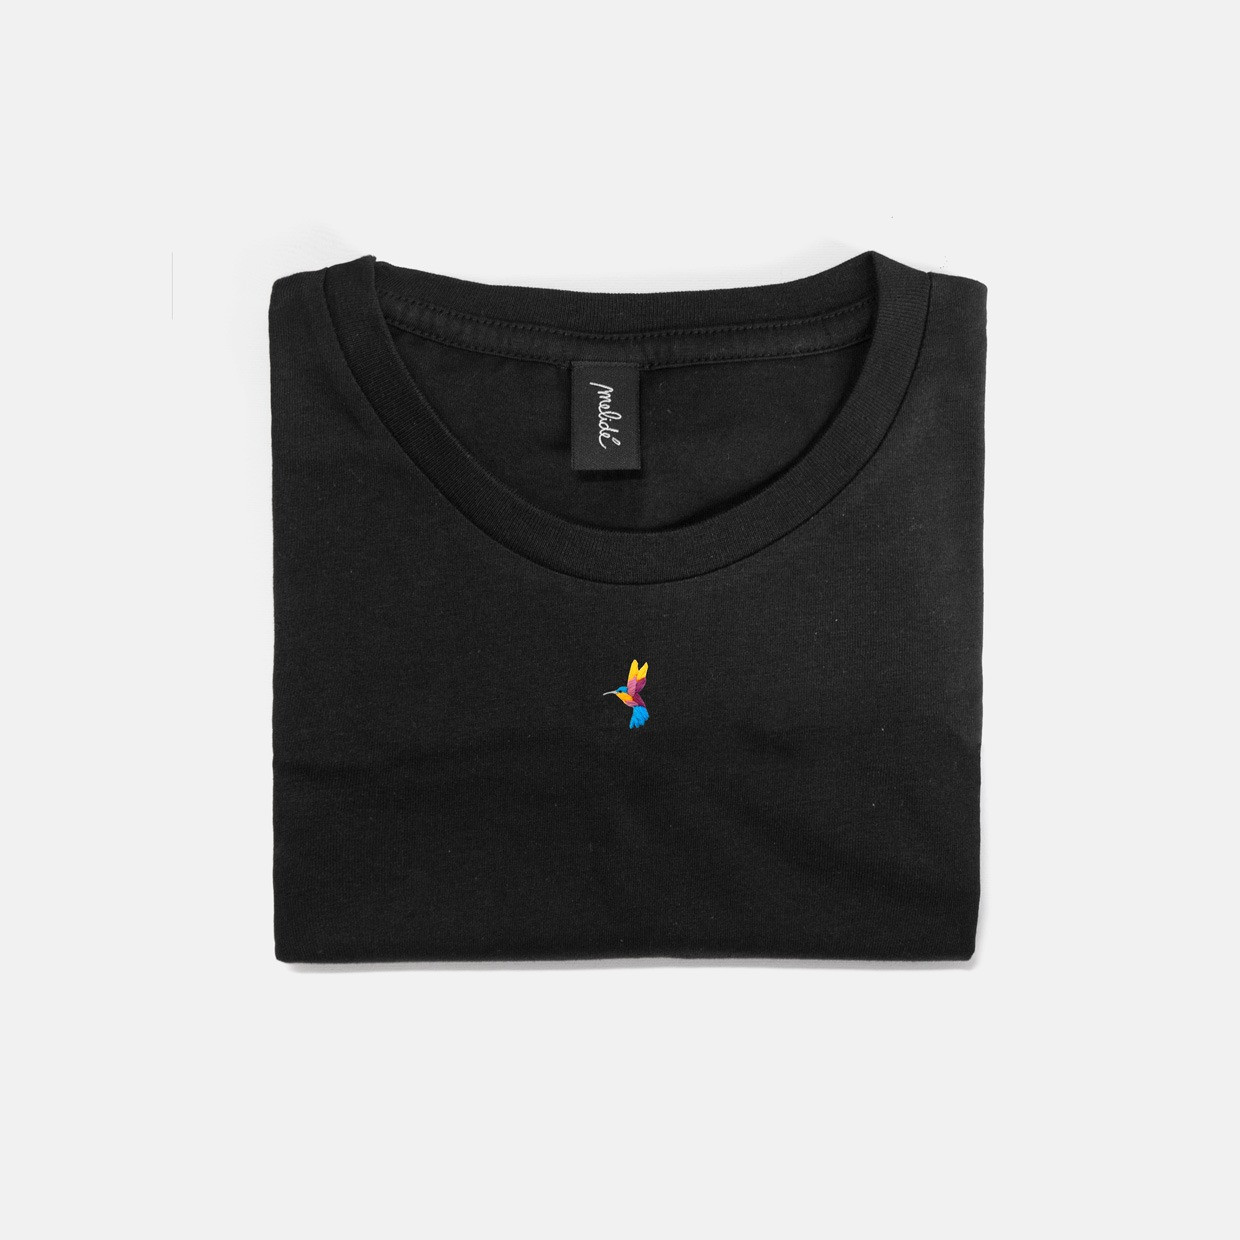 The COLIBRÌ ultimate tee